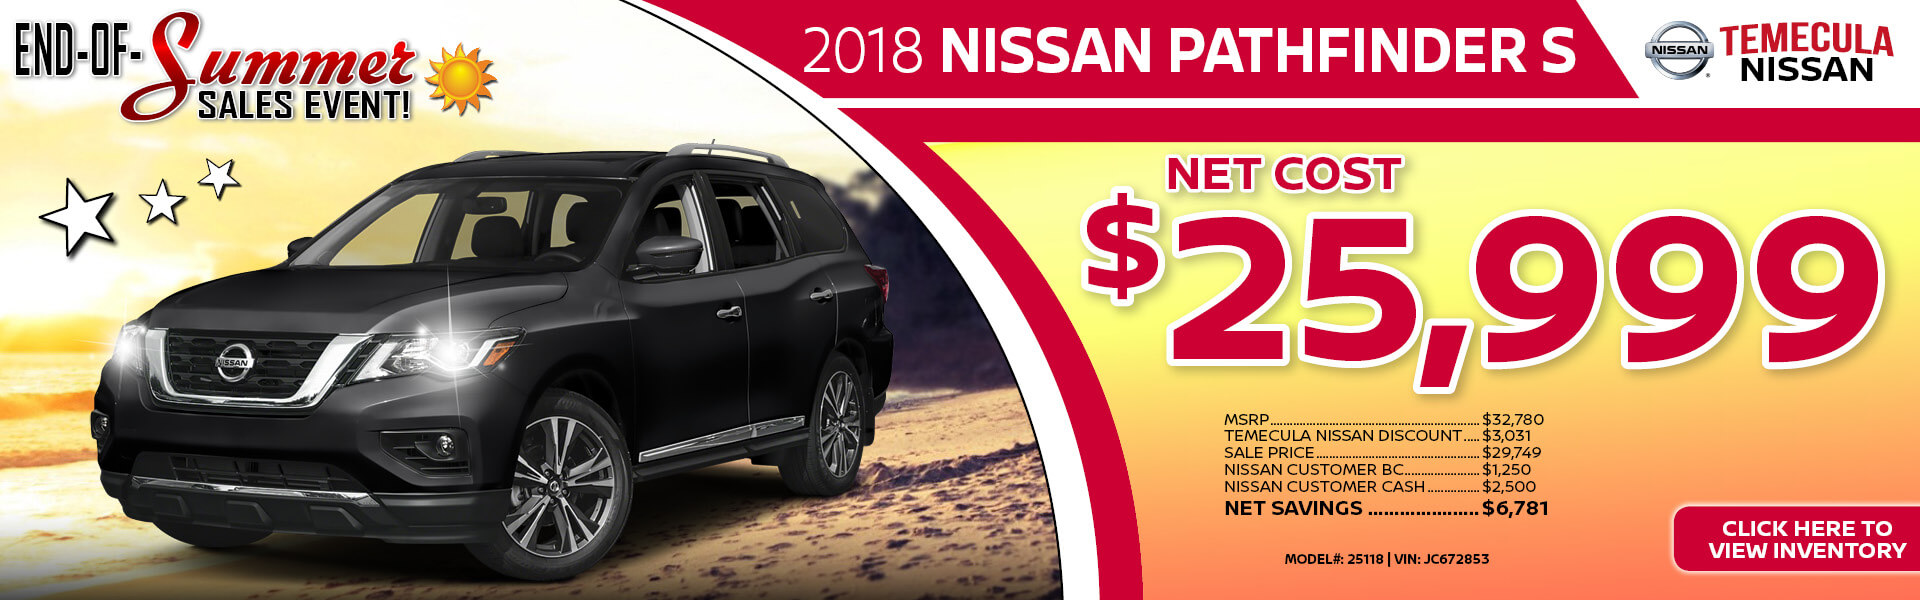 Nissan Pathfinder $25,999 Purchase